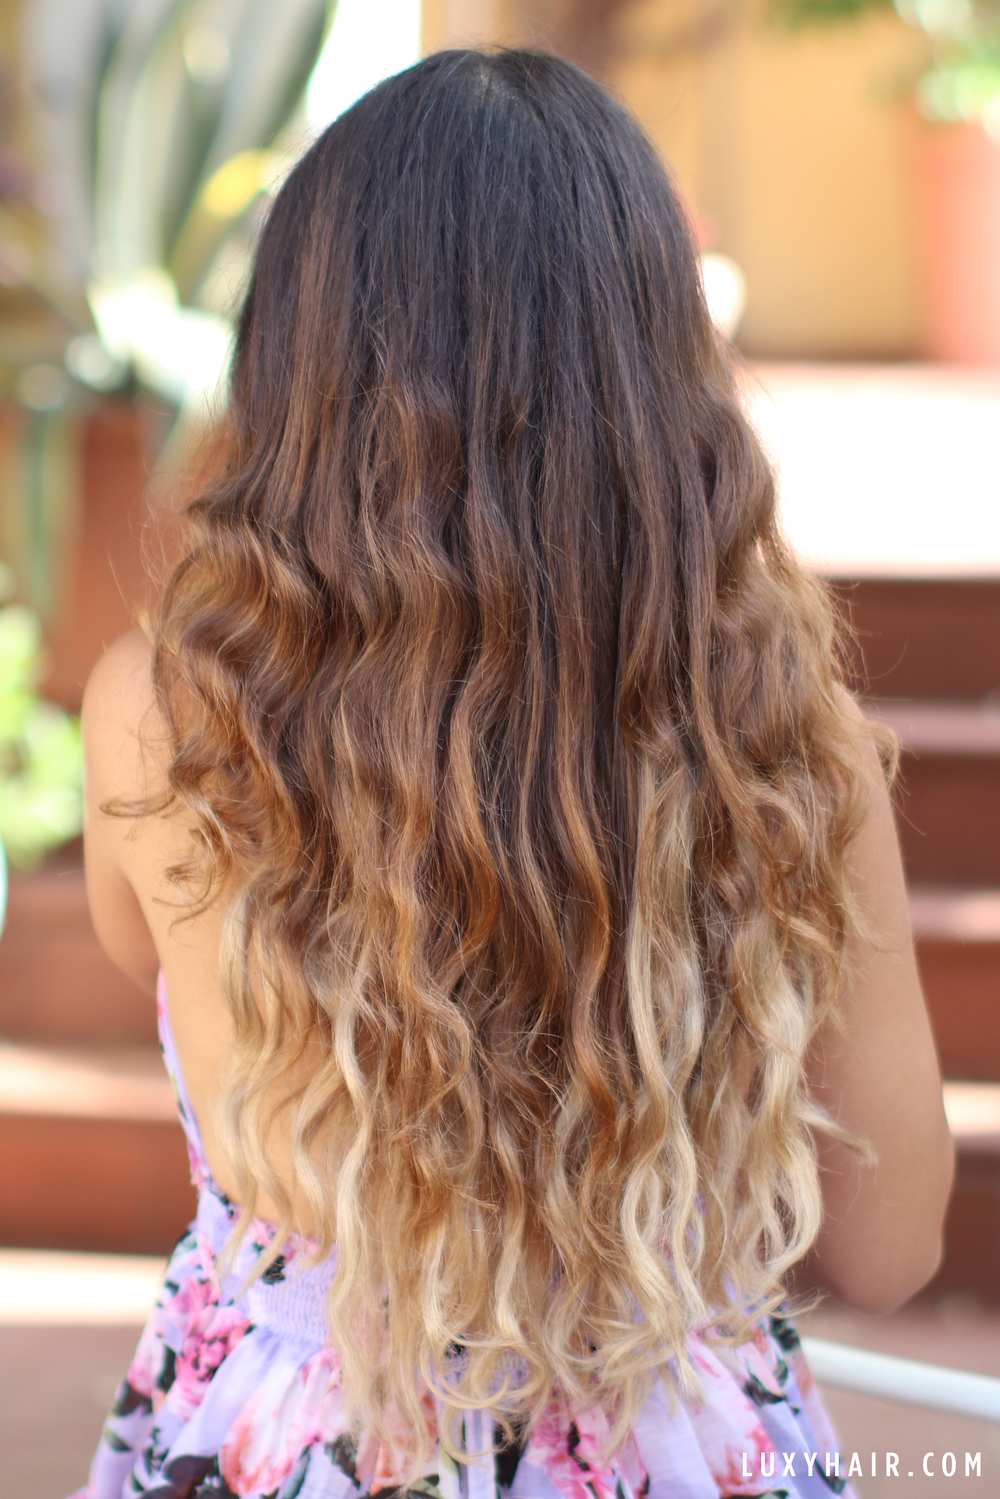 Luxy Hair Heatless Beach Waves Hair Tutorial